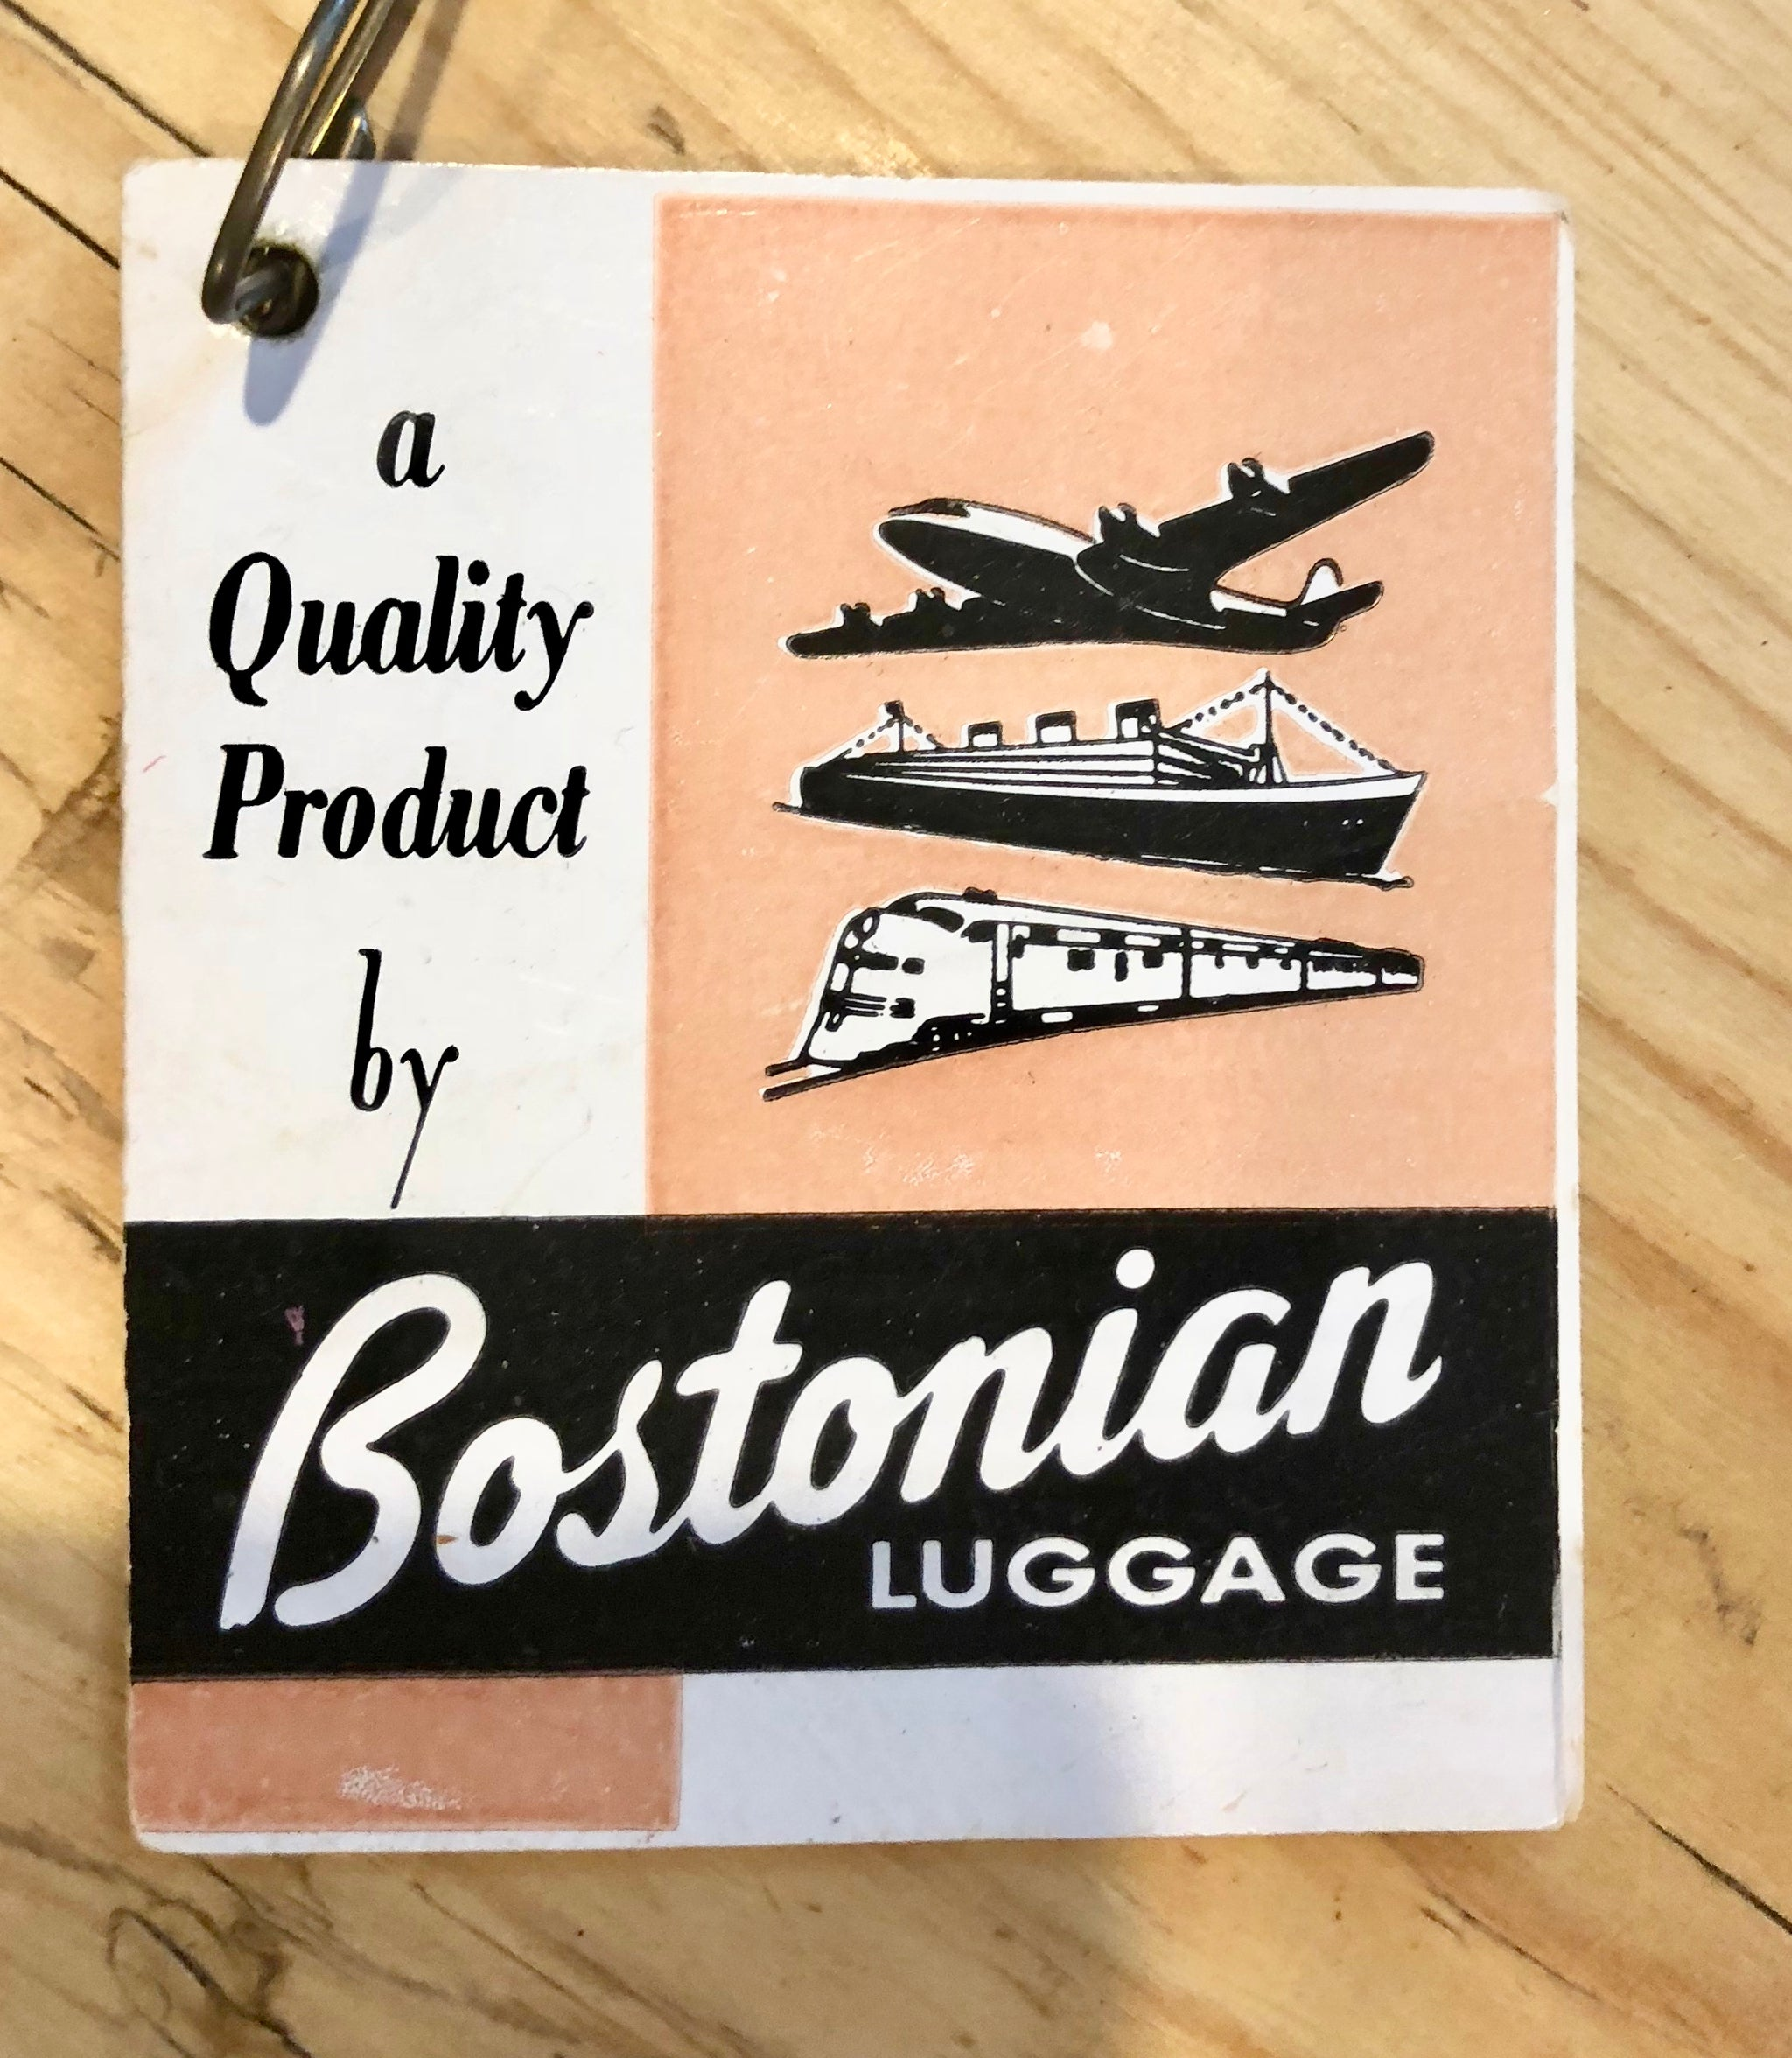 Bostonian Luggage and my grandfather